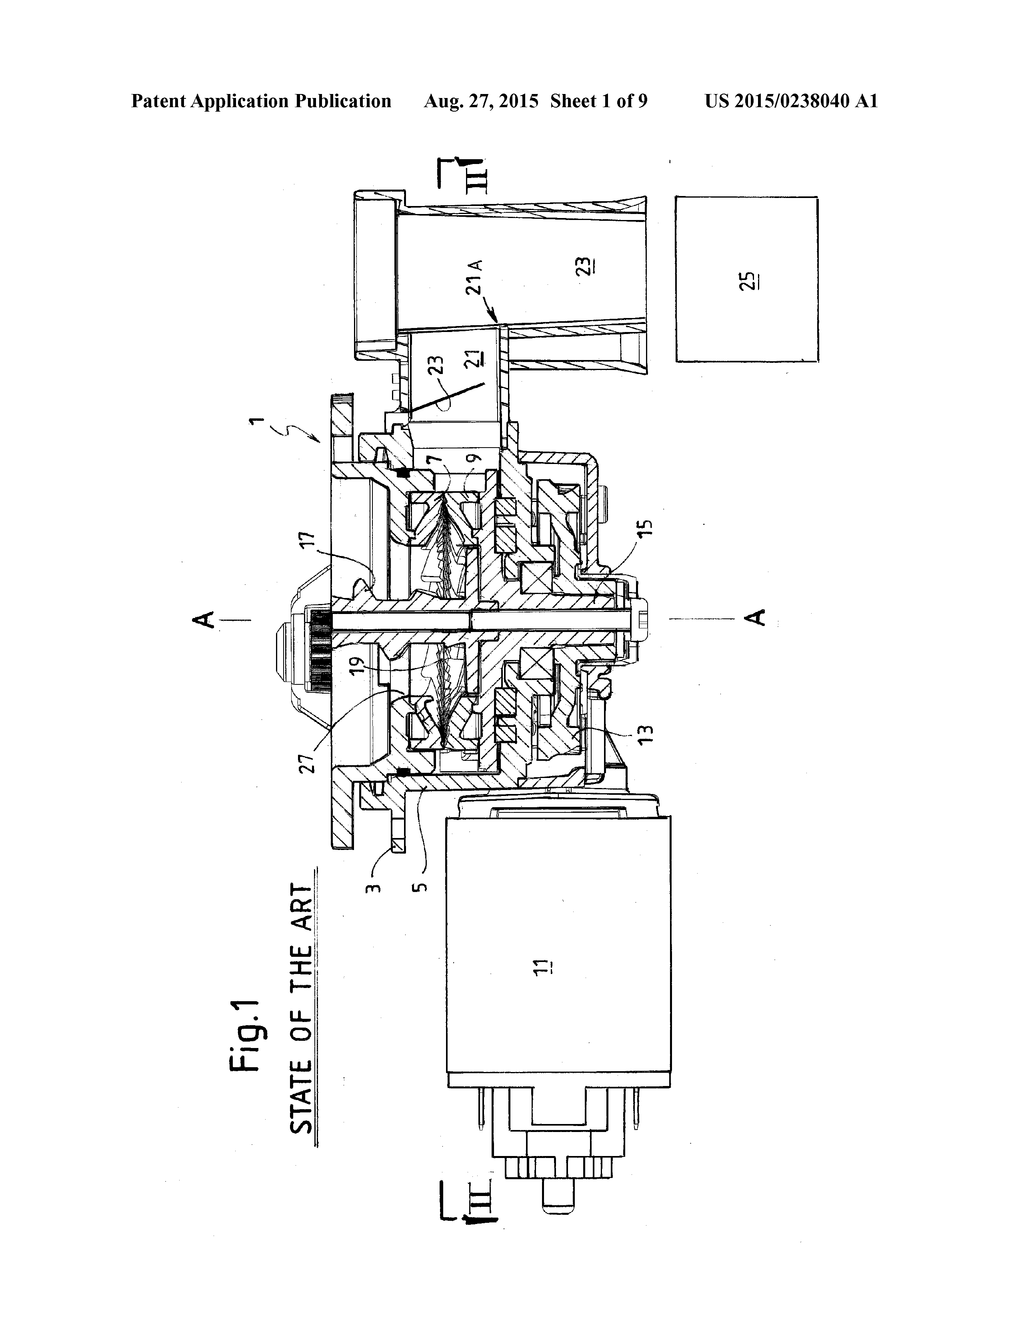 Coffee Grinder Diagram Search For Wiring Diagrams And Machine Containing A Rh Patentsencyclopedia Com